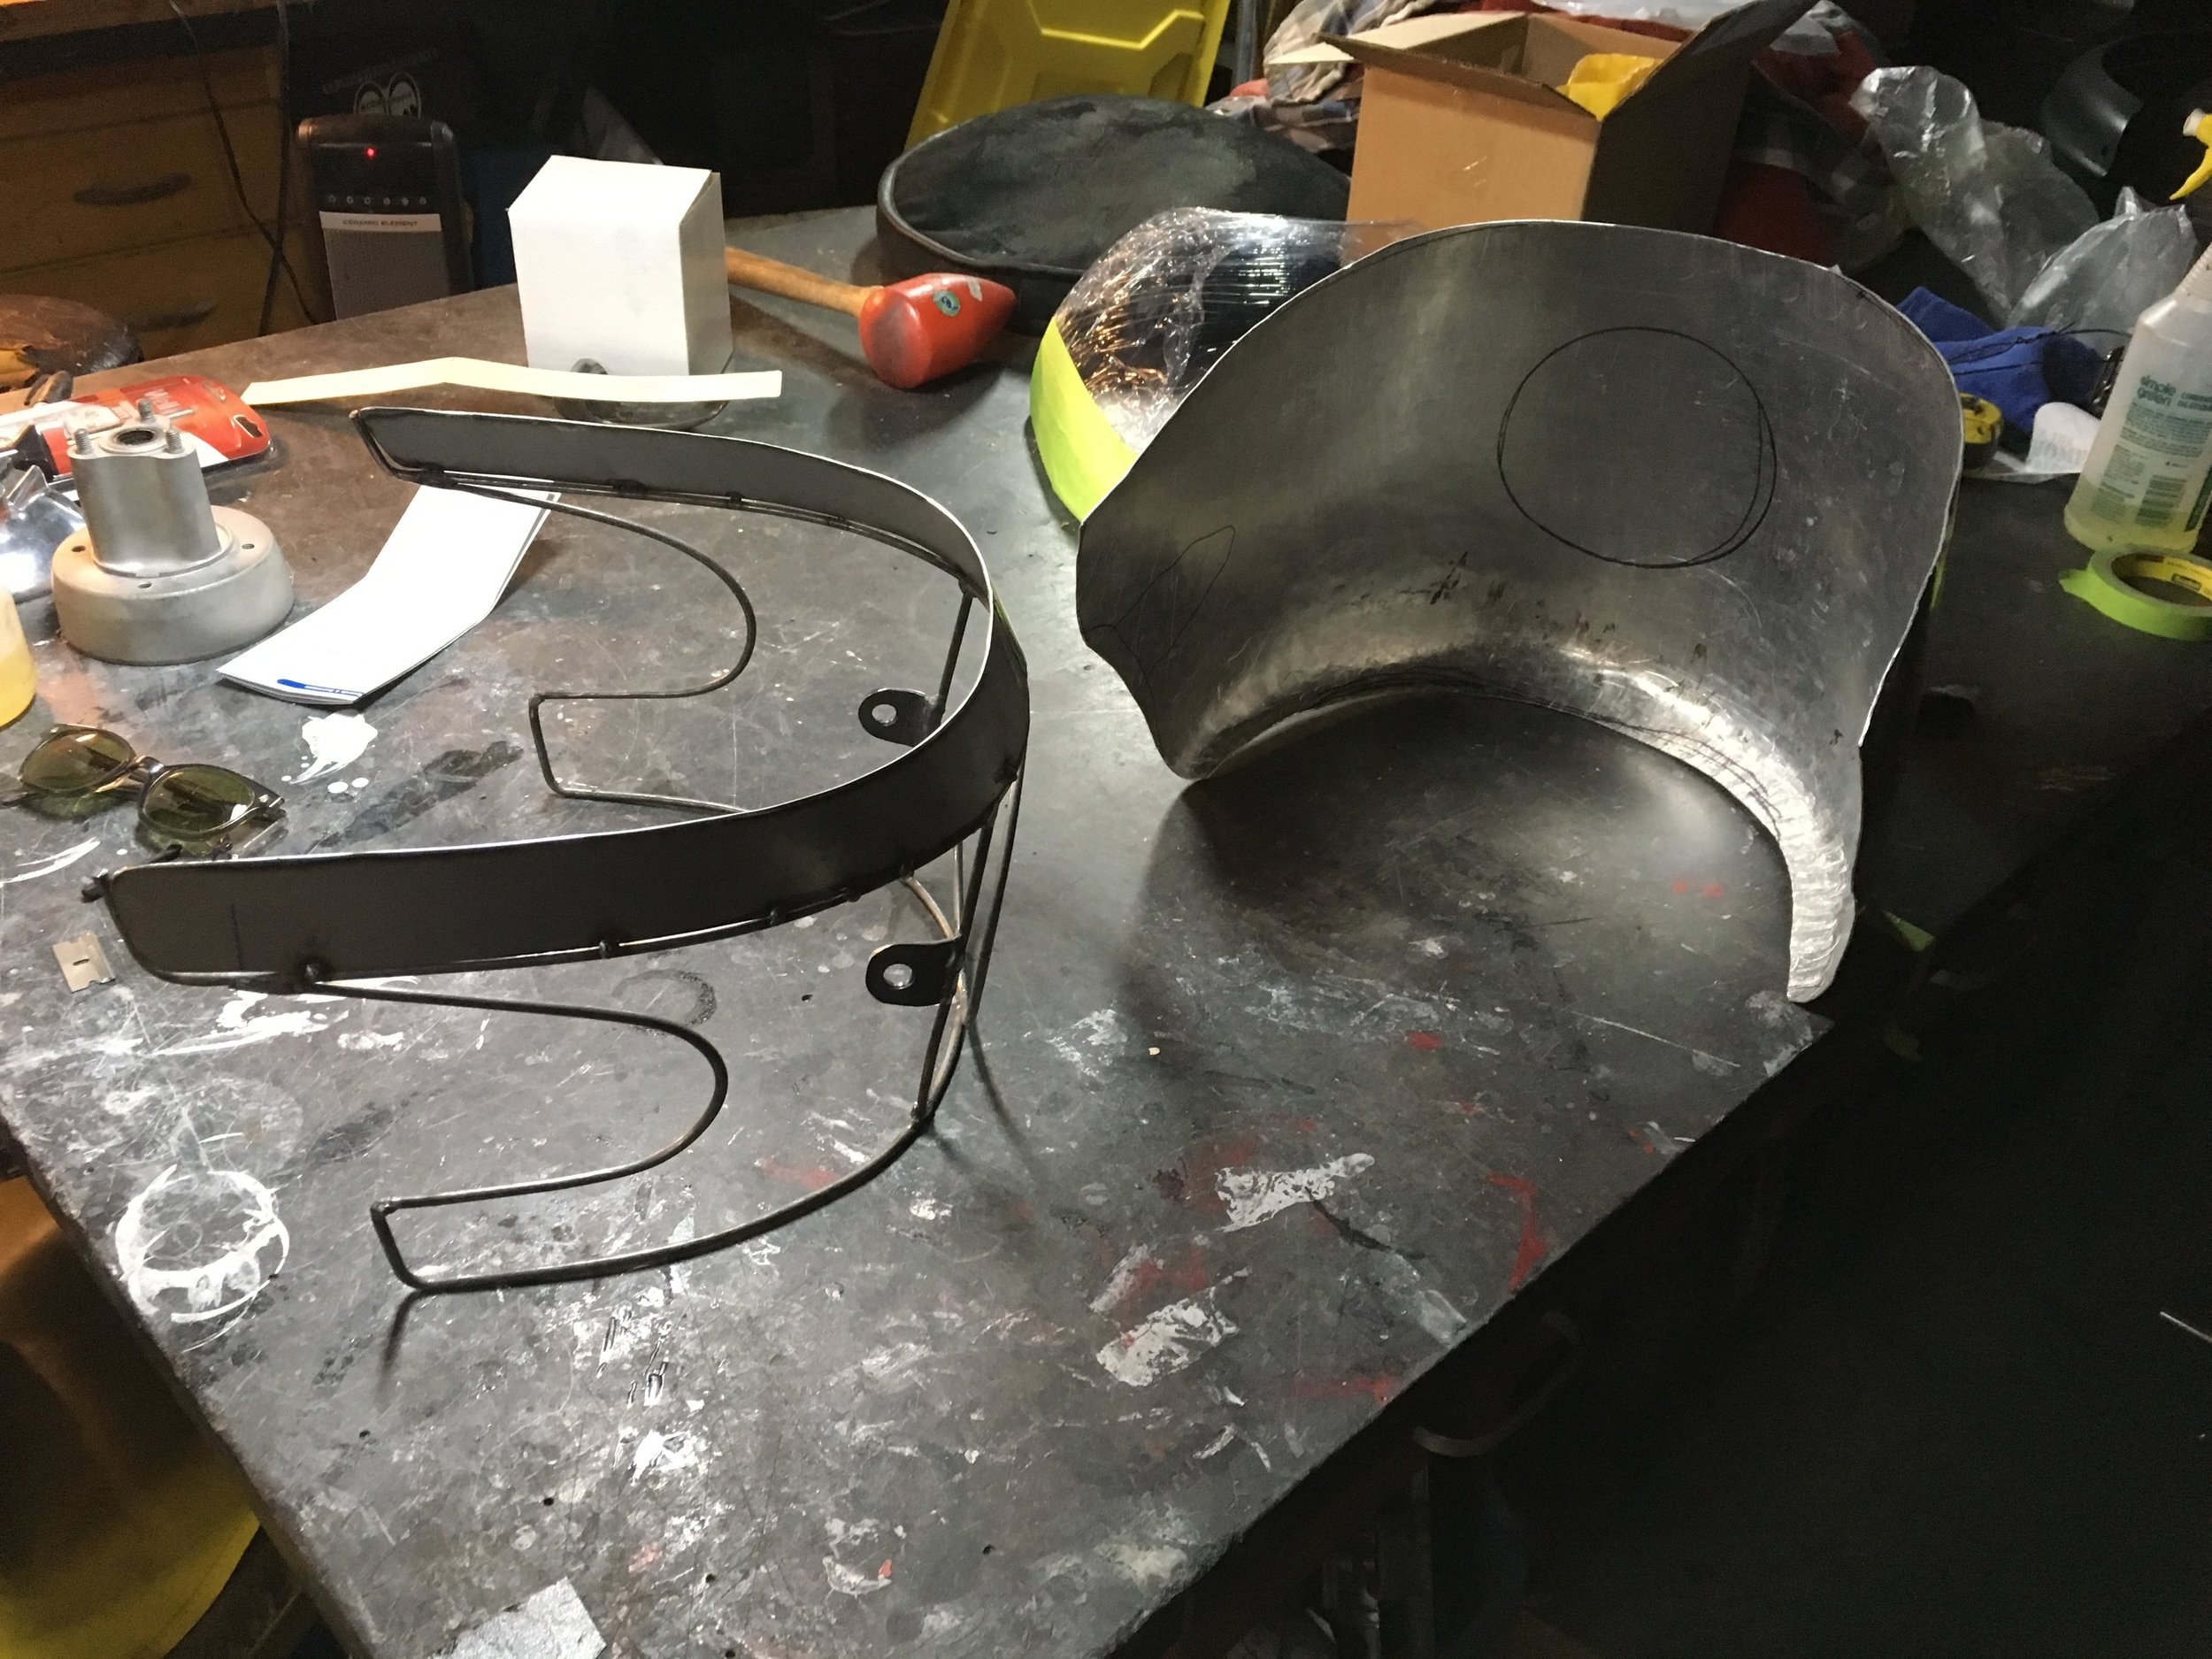 """Working on a front fairing for the 1974 Norton Commando cafe build. The skin is .050 aluminum, with a 3/16""""steel wire frame. My process is somewhat backwards in that I usually start shaping the skin first and work on the wireframe after. This is the same basic technique I used on """"The 7"""" bike fairing."""